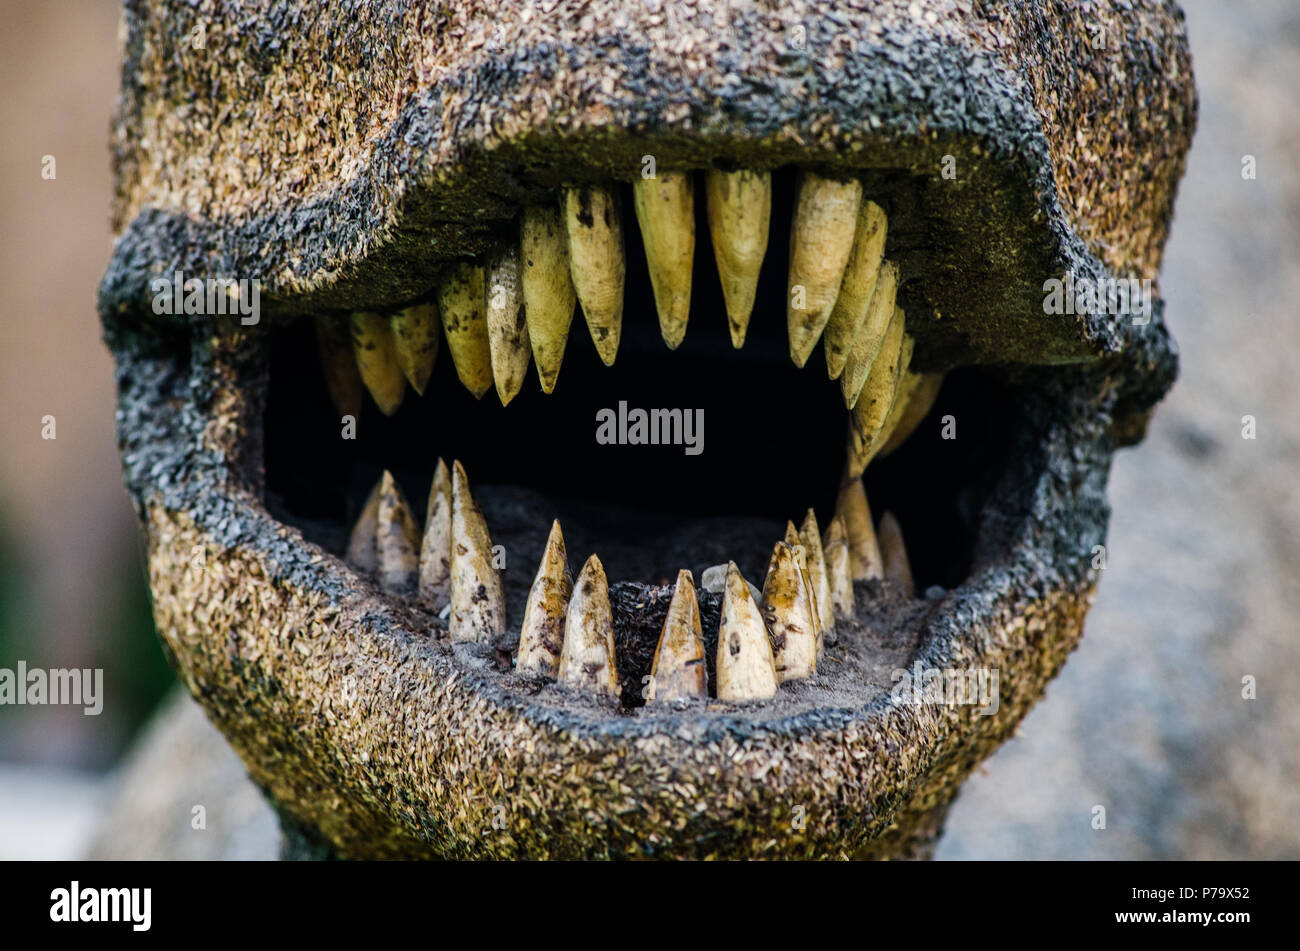 Dinosaur mouth with sharp teeth, terrifying photograph - Stock Image